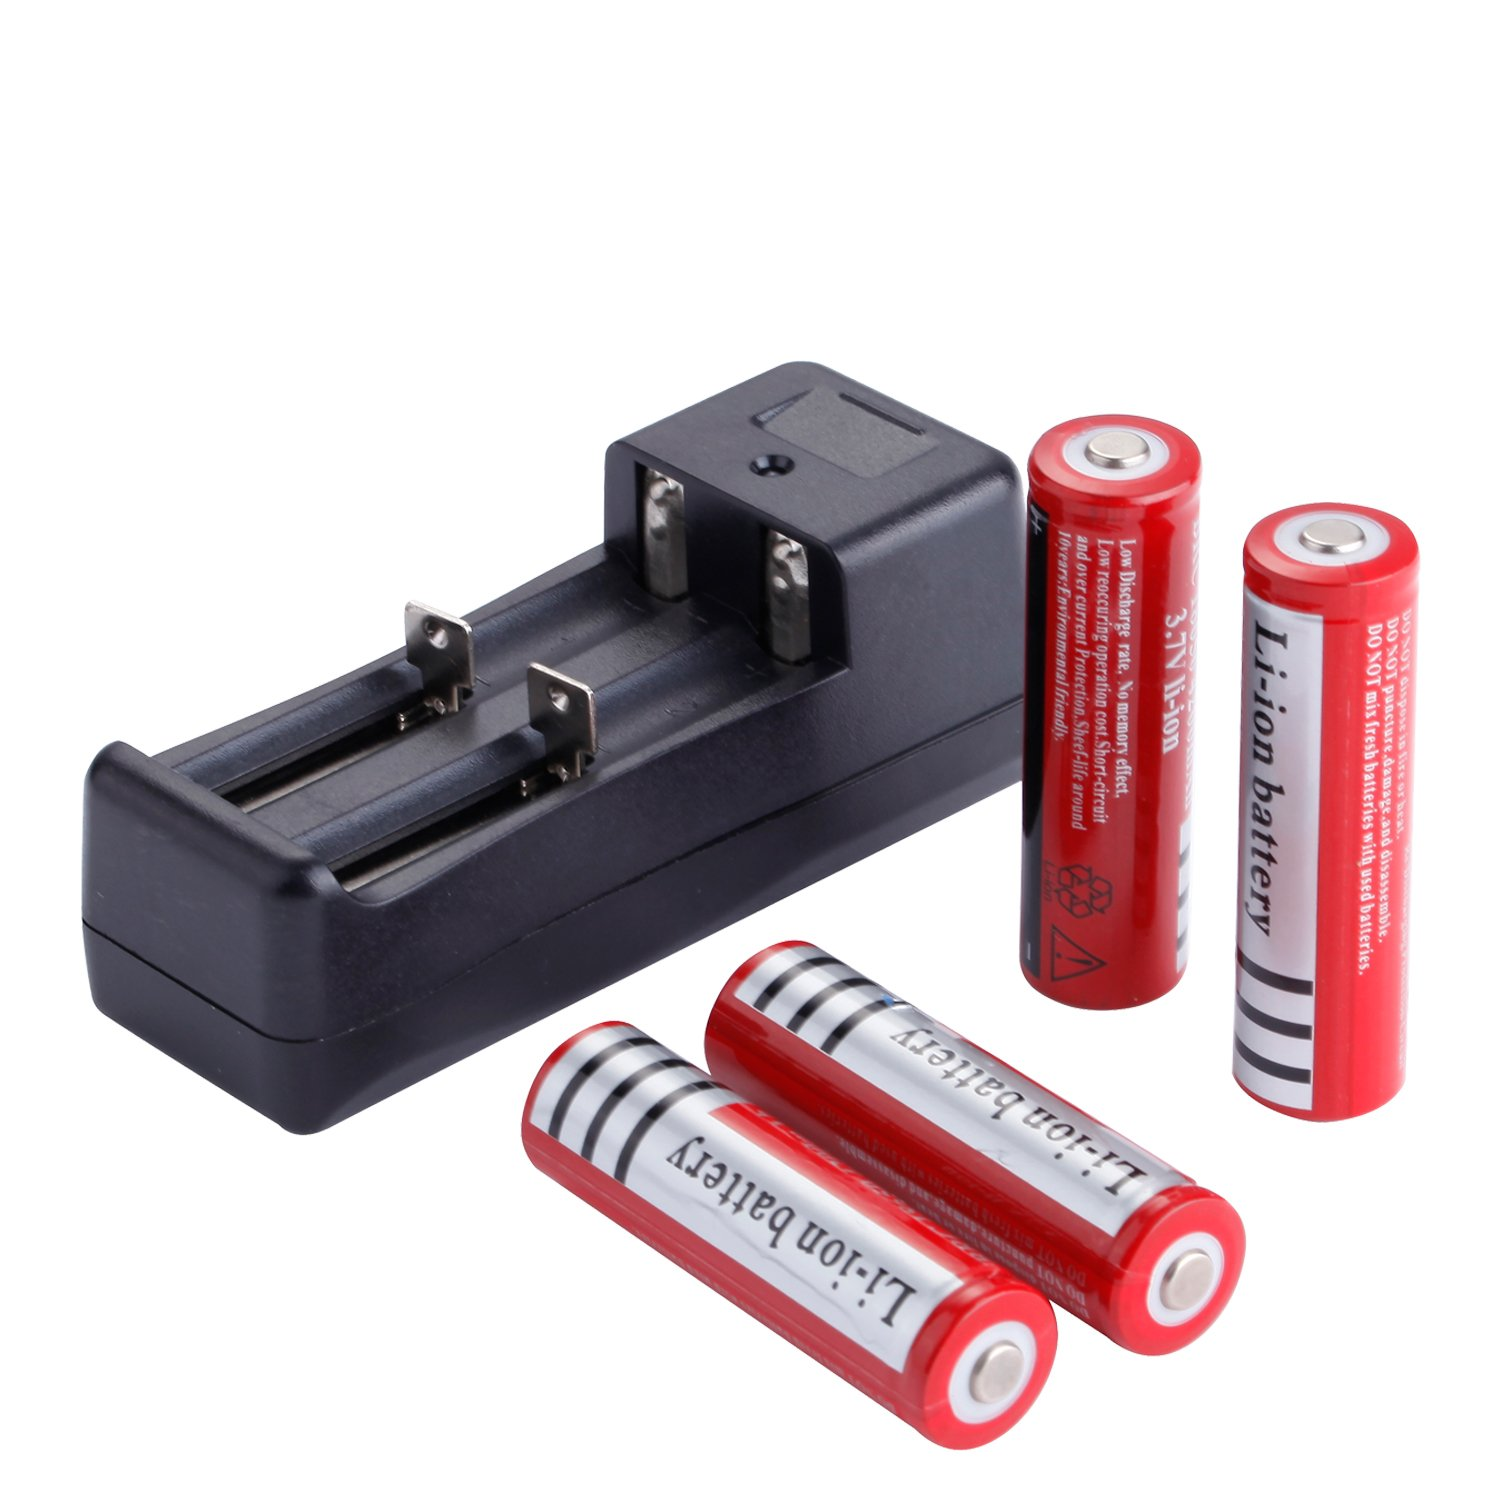 Deruicent 4 Pack 3.7V 18650 Rechargeable Li-ion Battery with Charger for High-power LED Flashlights, Headlamps